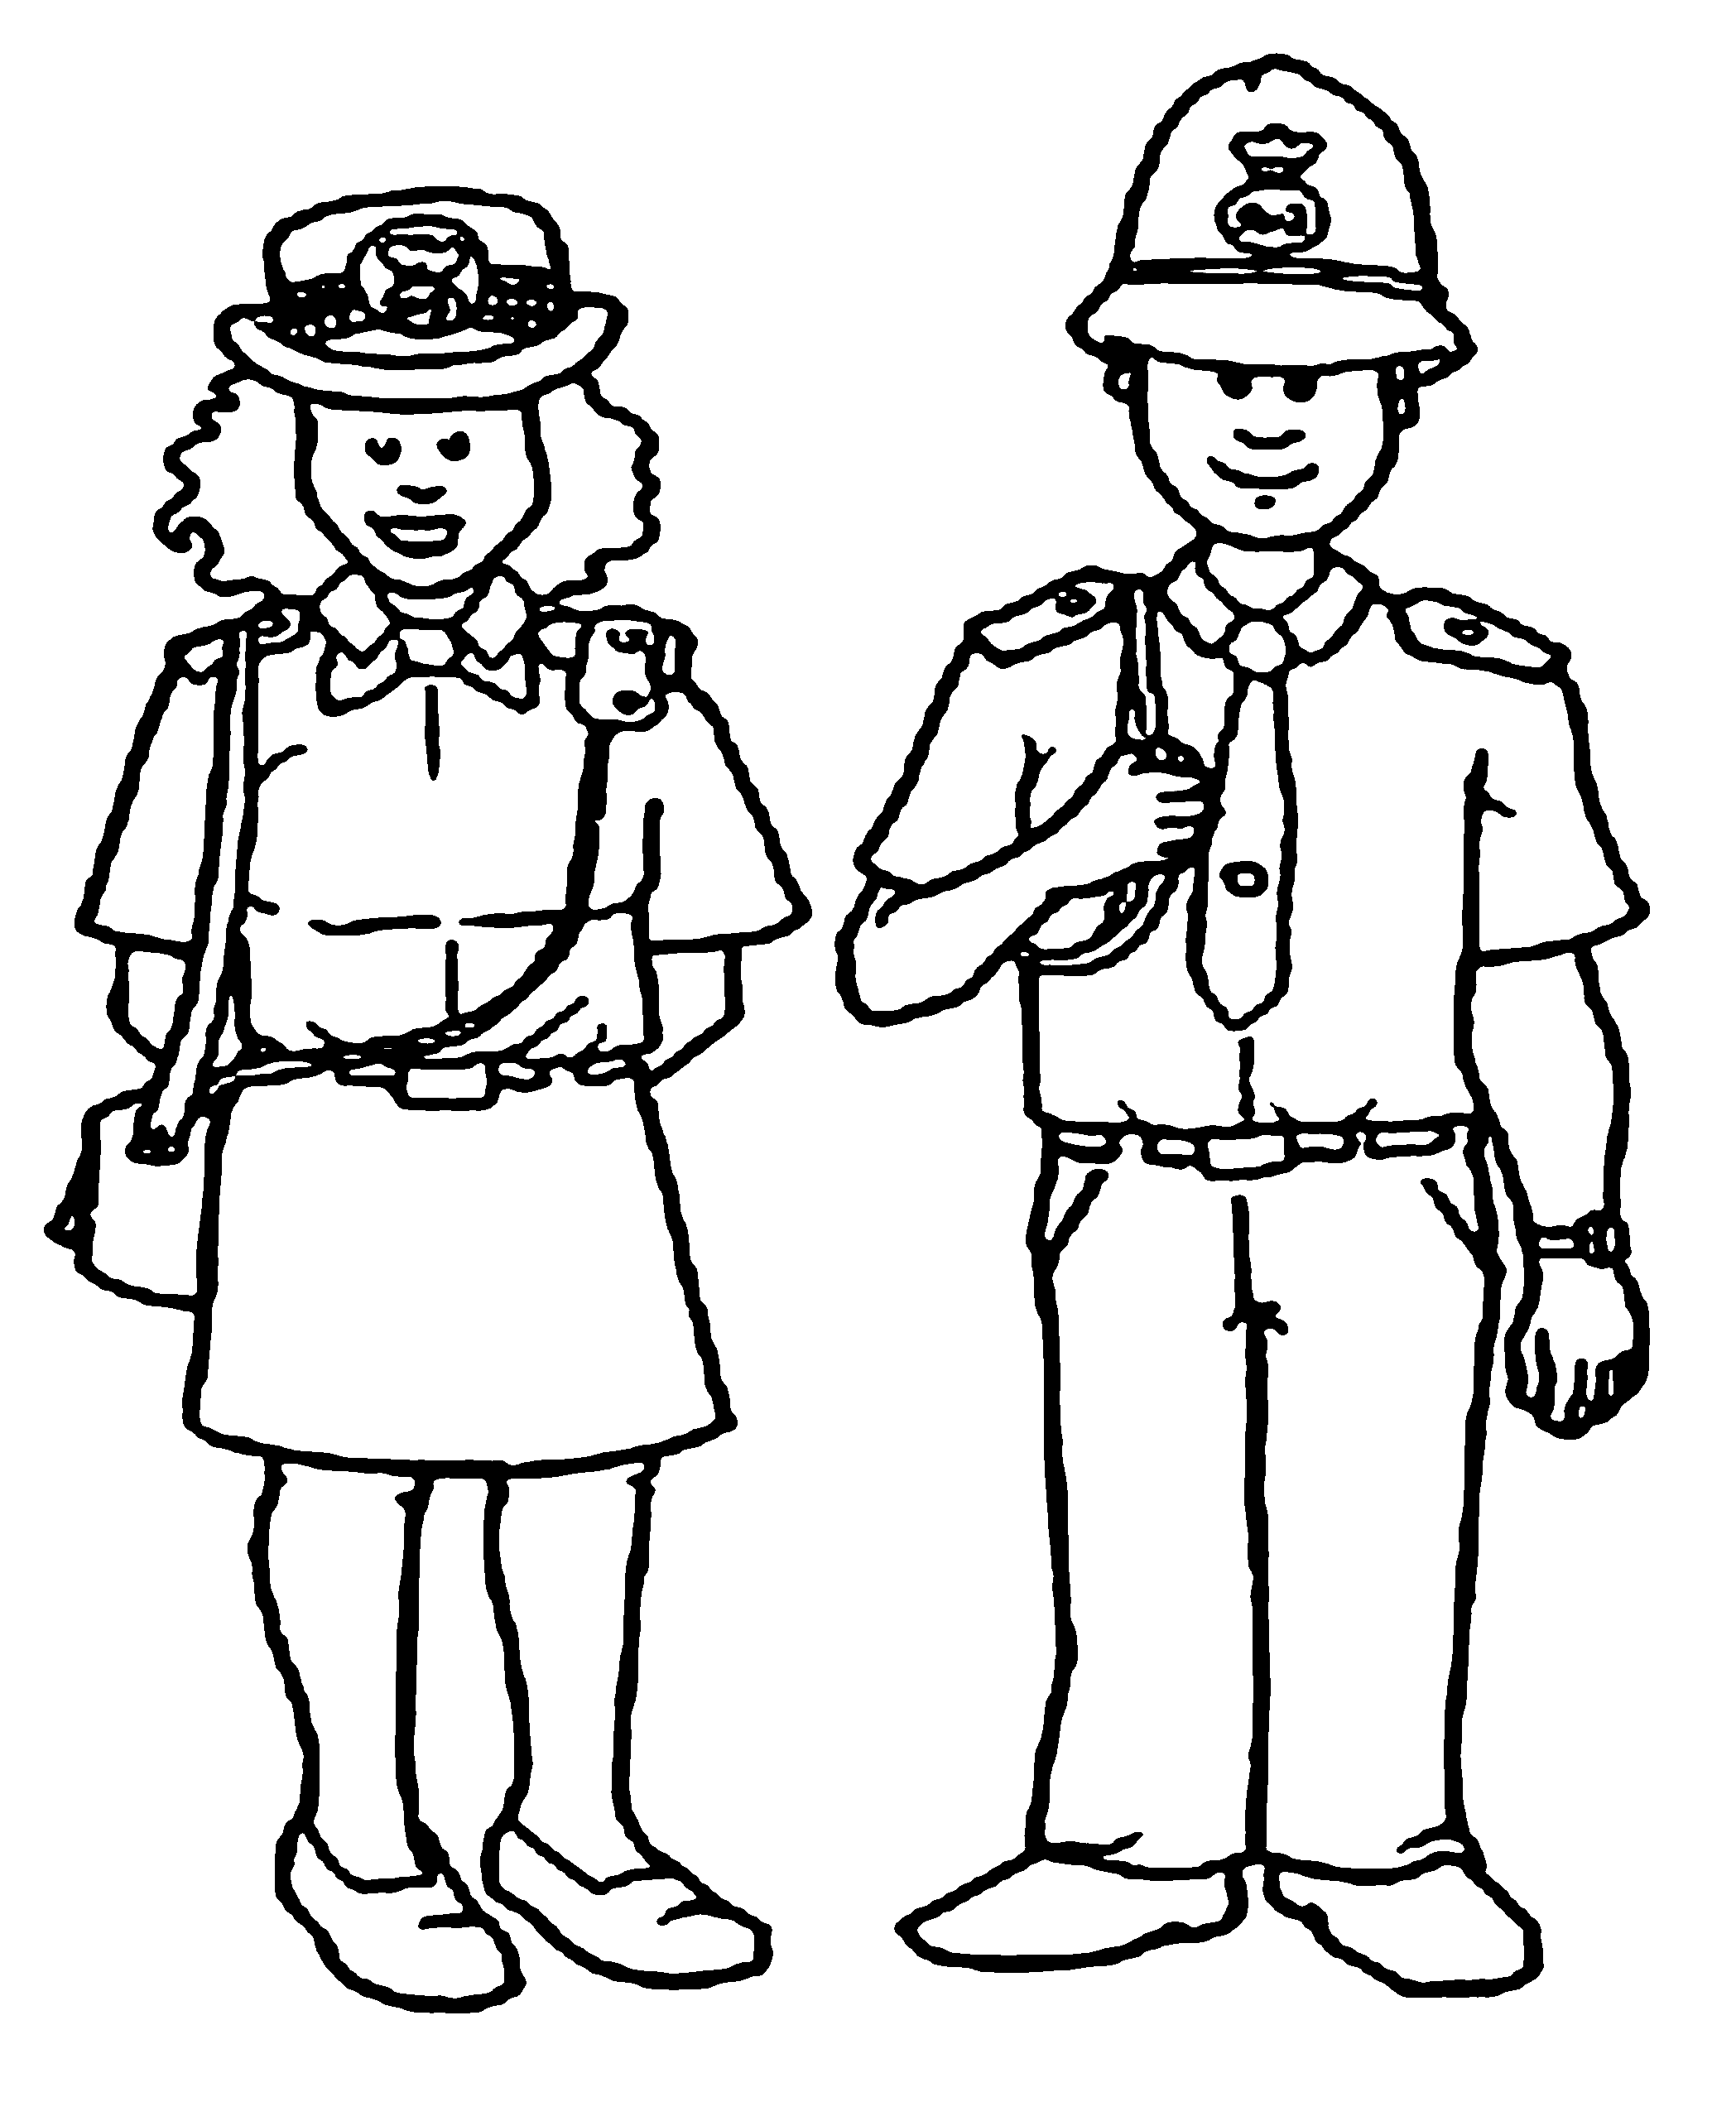 police officer coloring pictures police women and policeman coloring pages kids coloring police officer pictures coloring